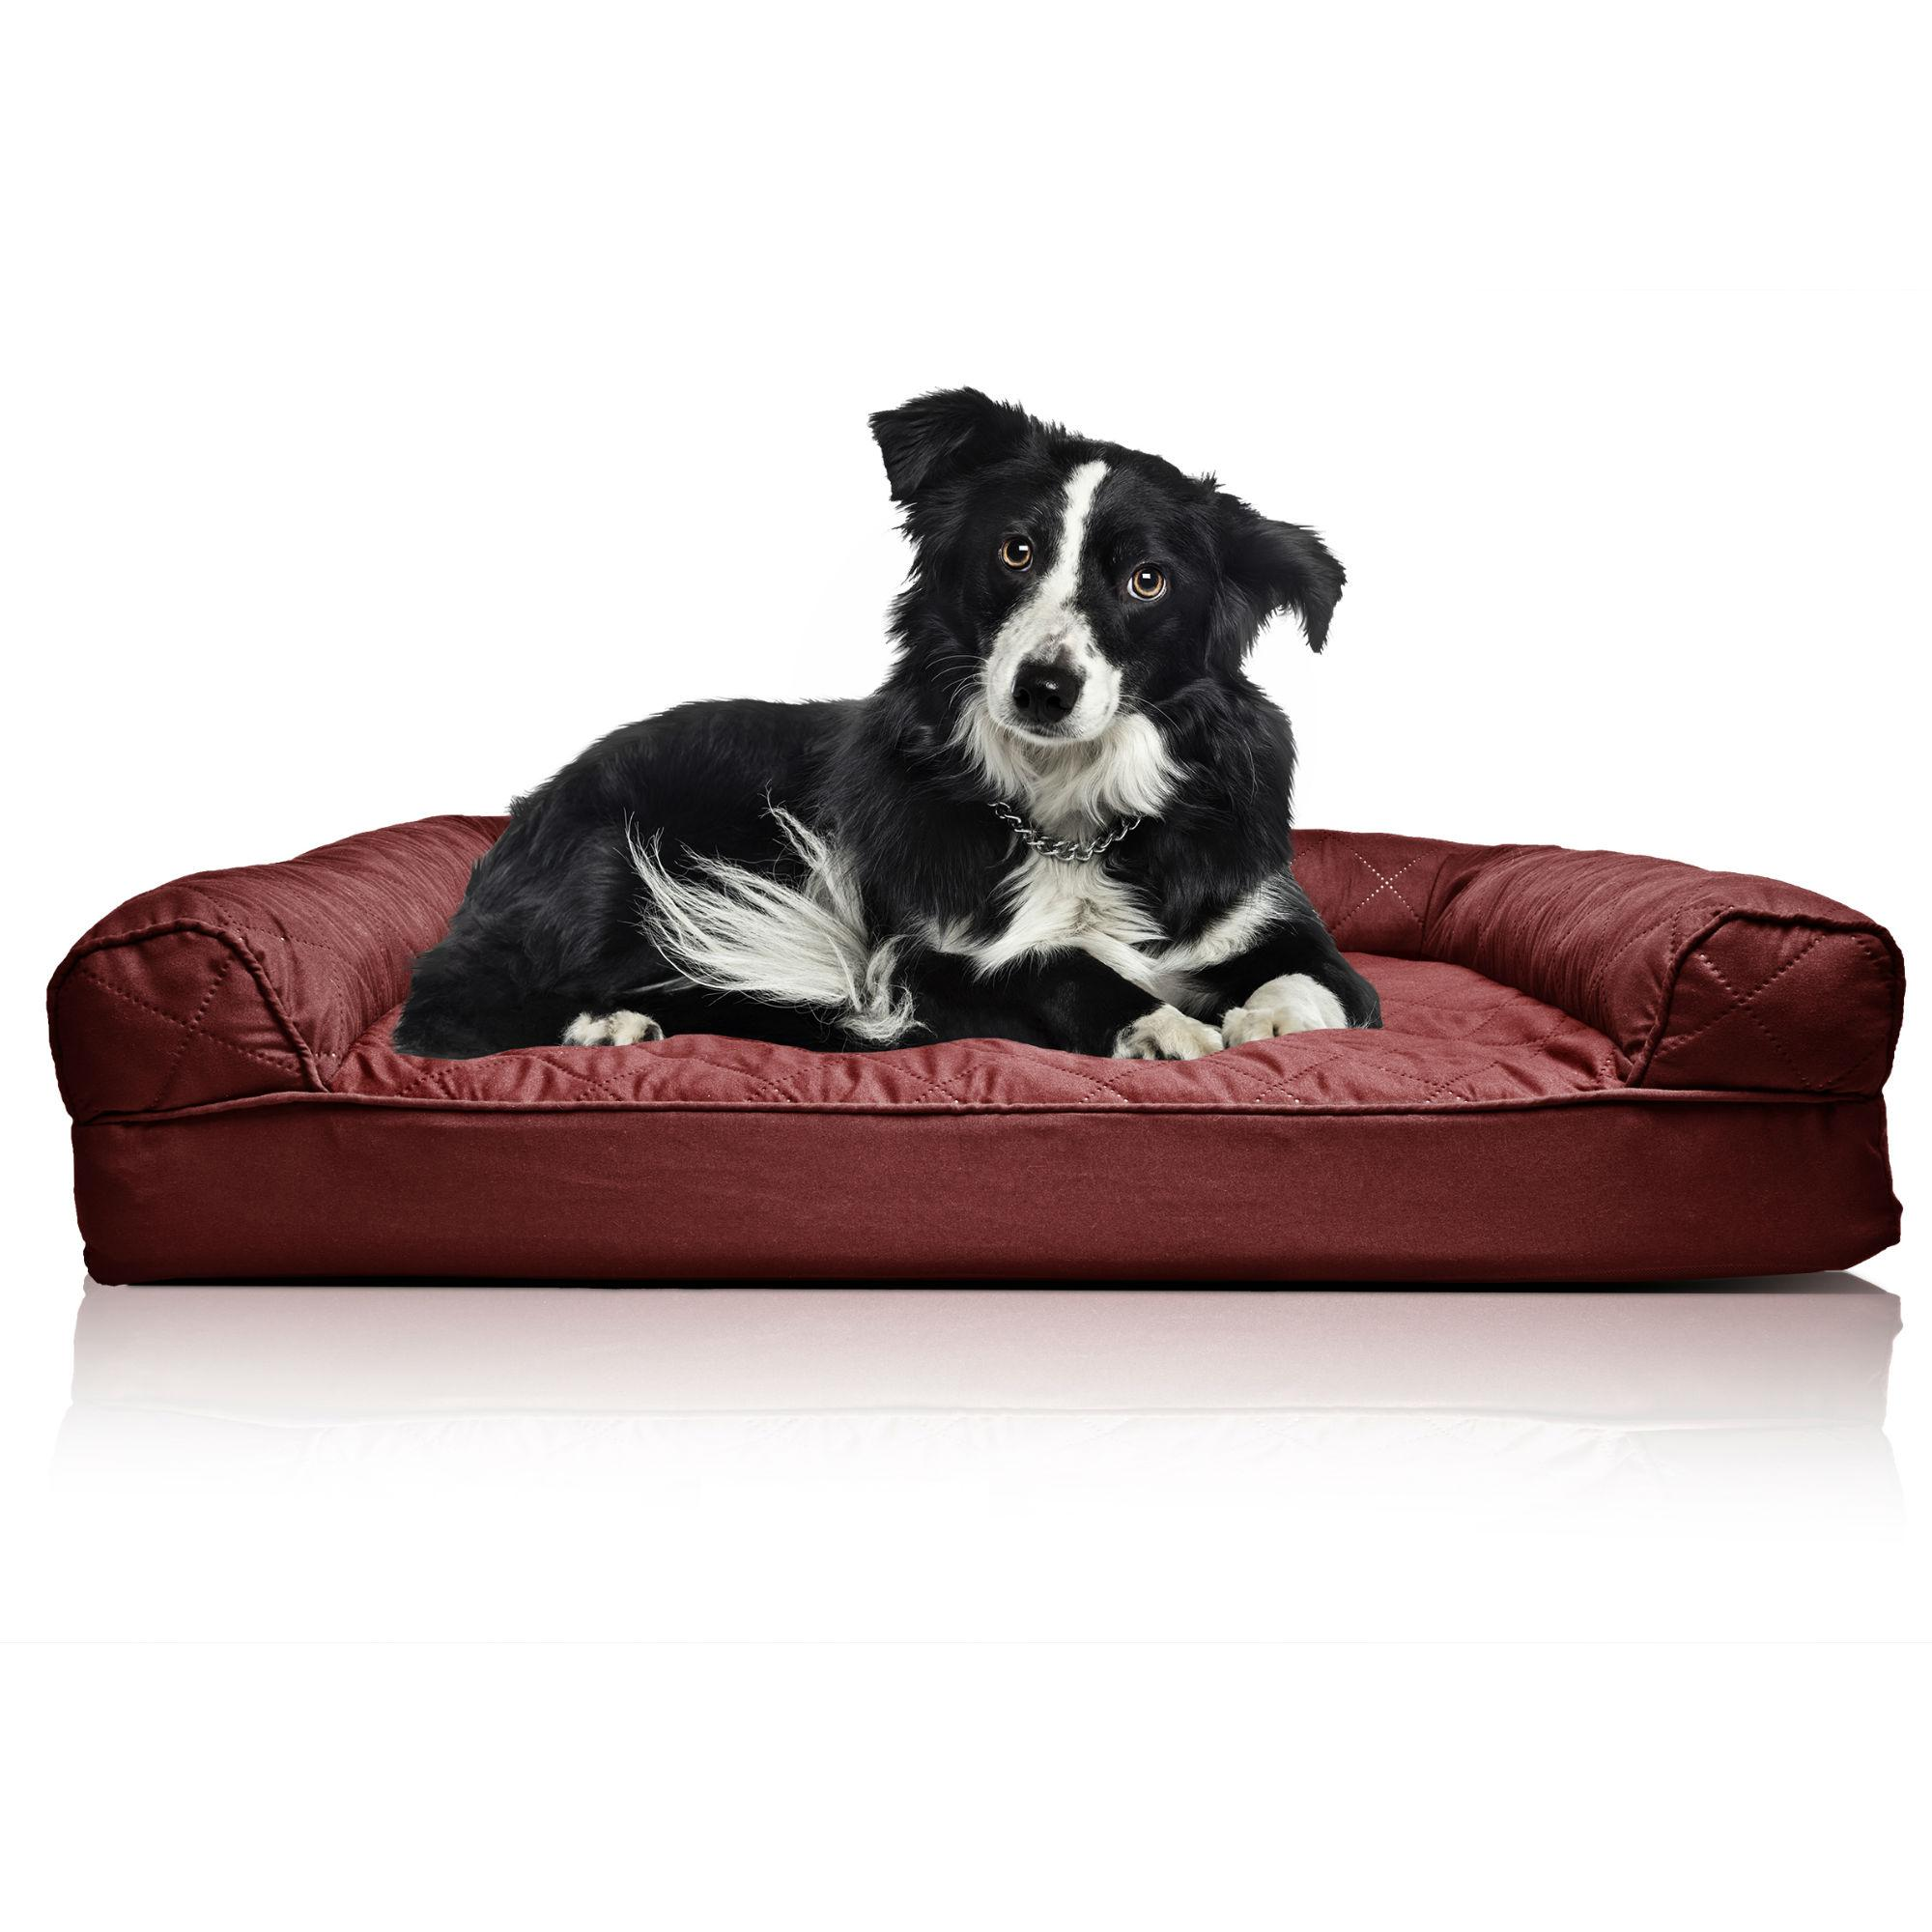 Stupendous Furhaven Quilted Orthopedic Sofa Pet Bed Wine Red Gmtry Best Dining Table And Chair Ideas Images Gmtryco